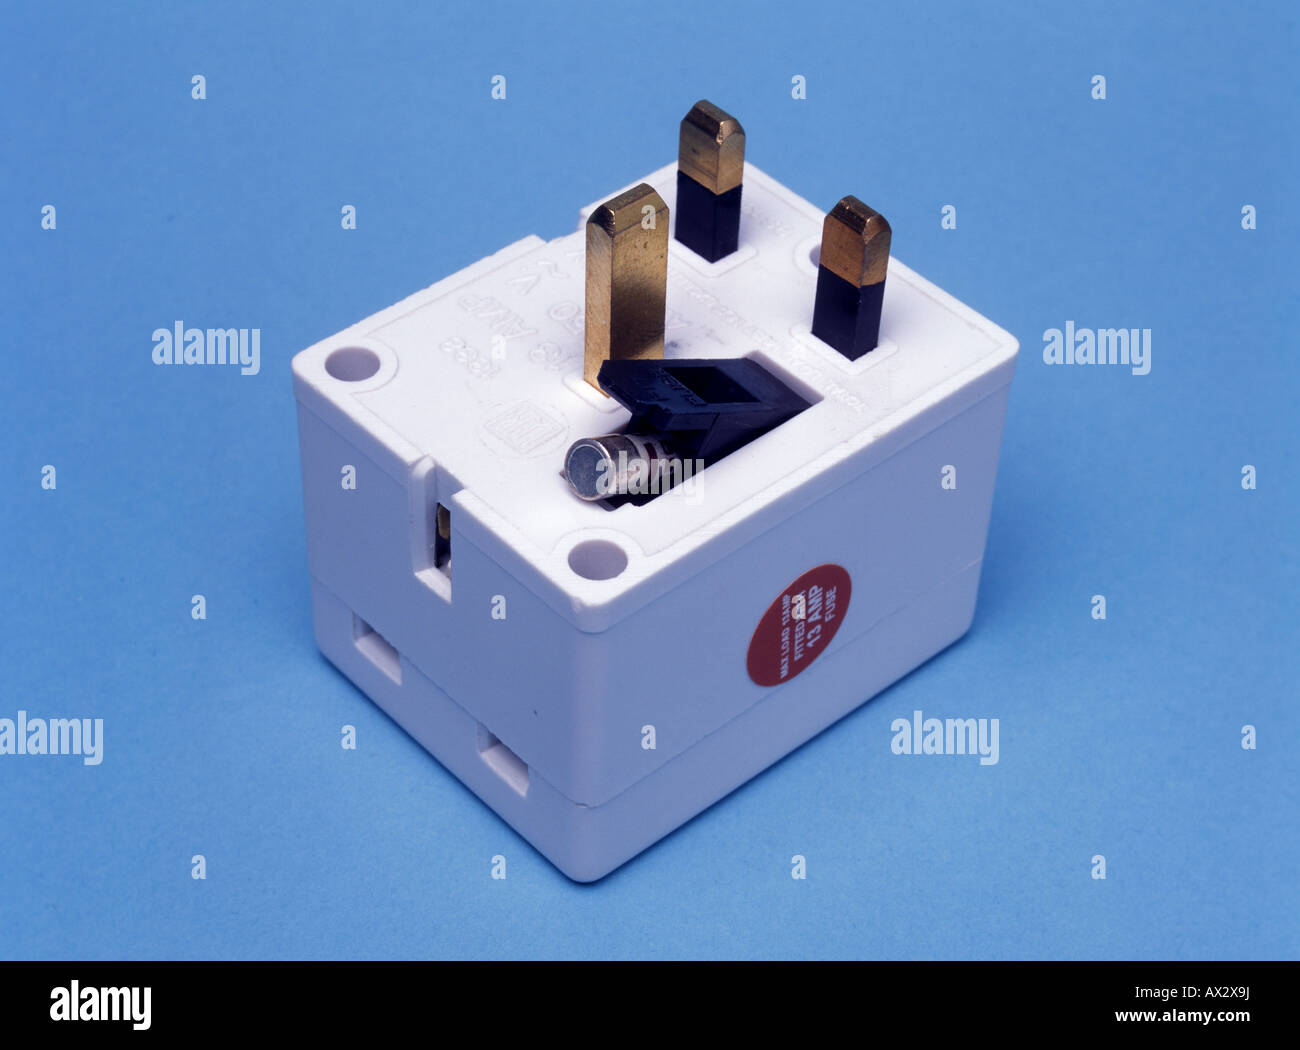 A 13 amp plug adaptor for use in UK - Stock Image